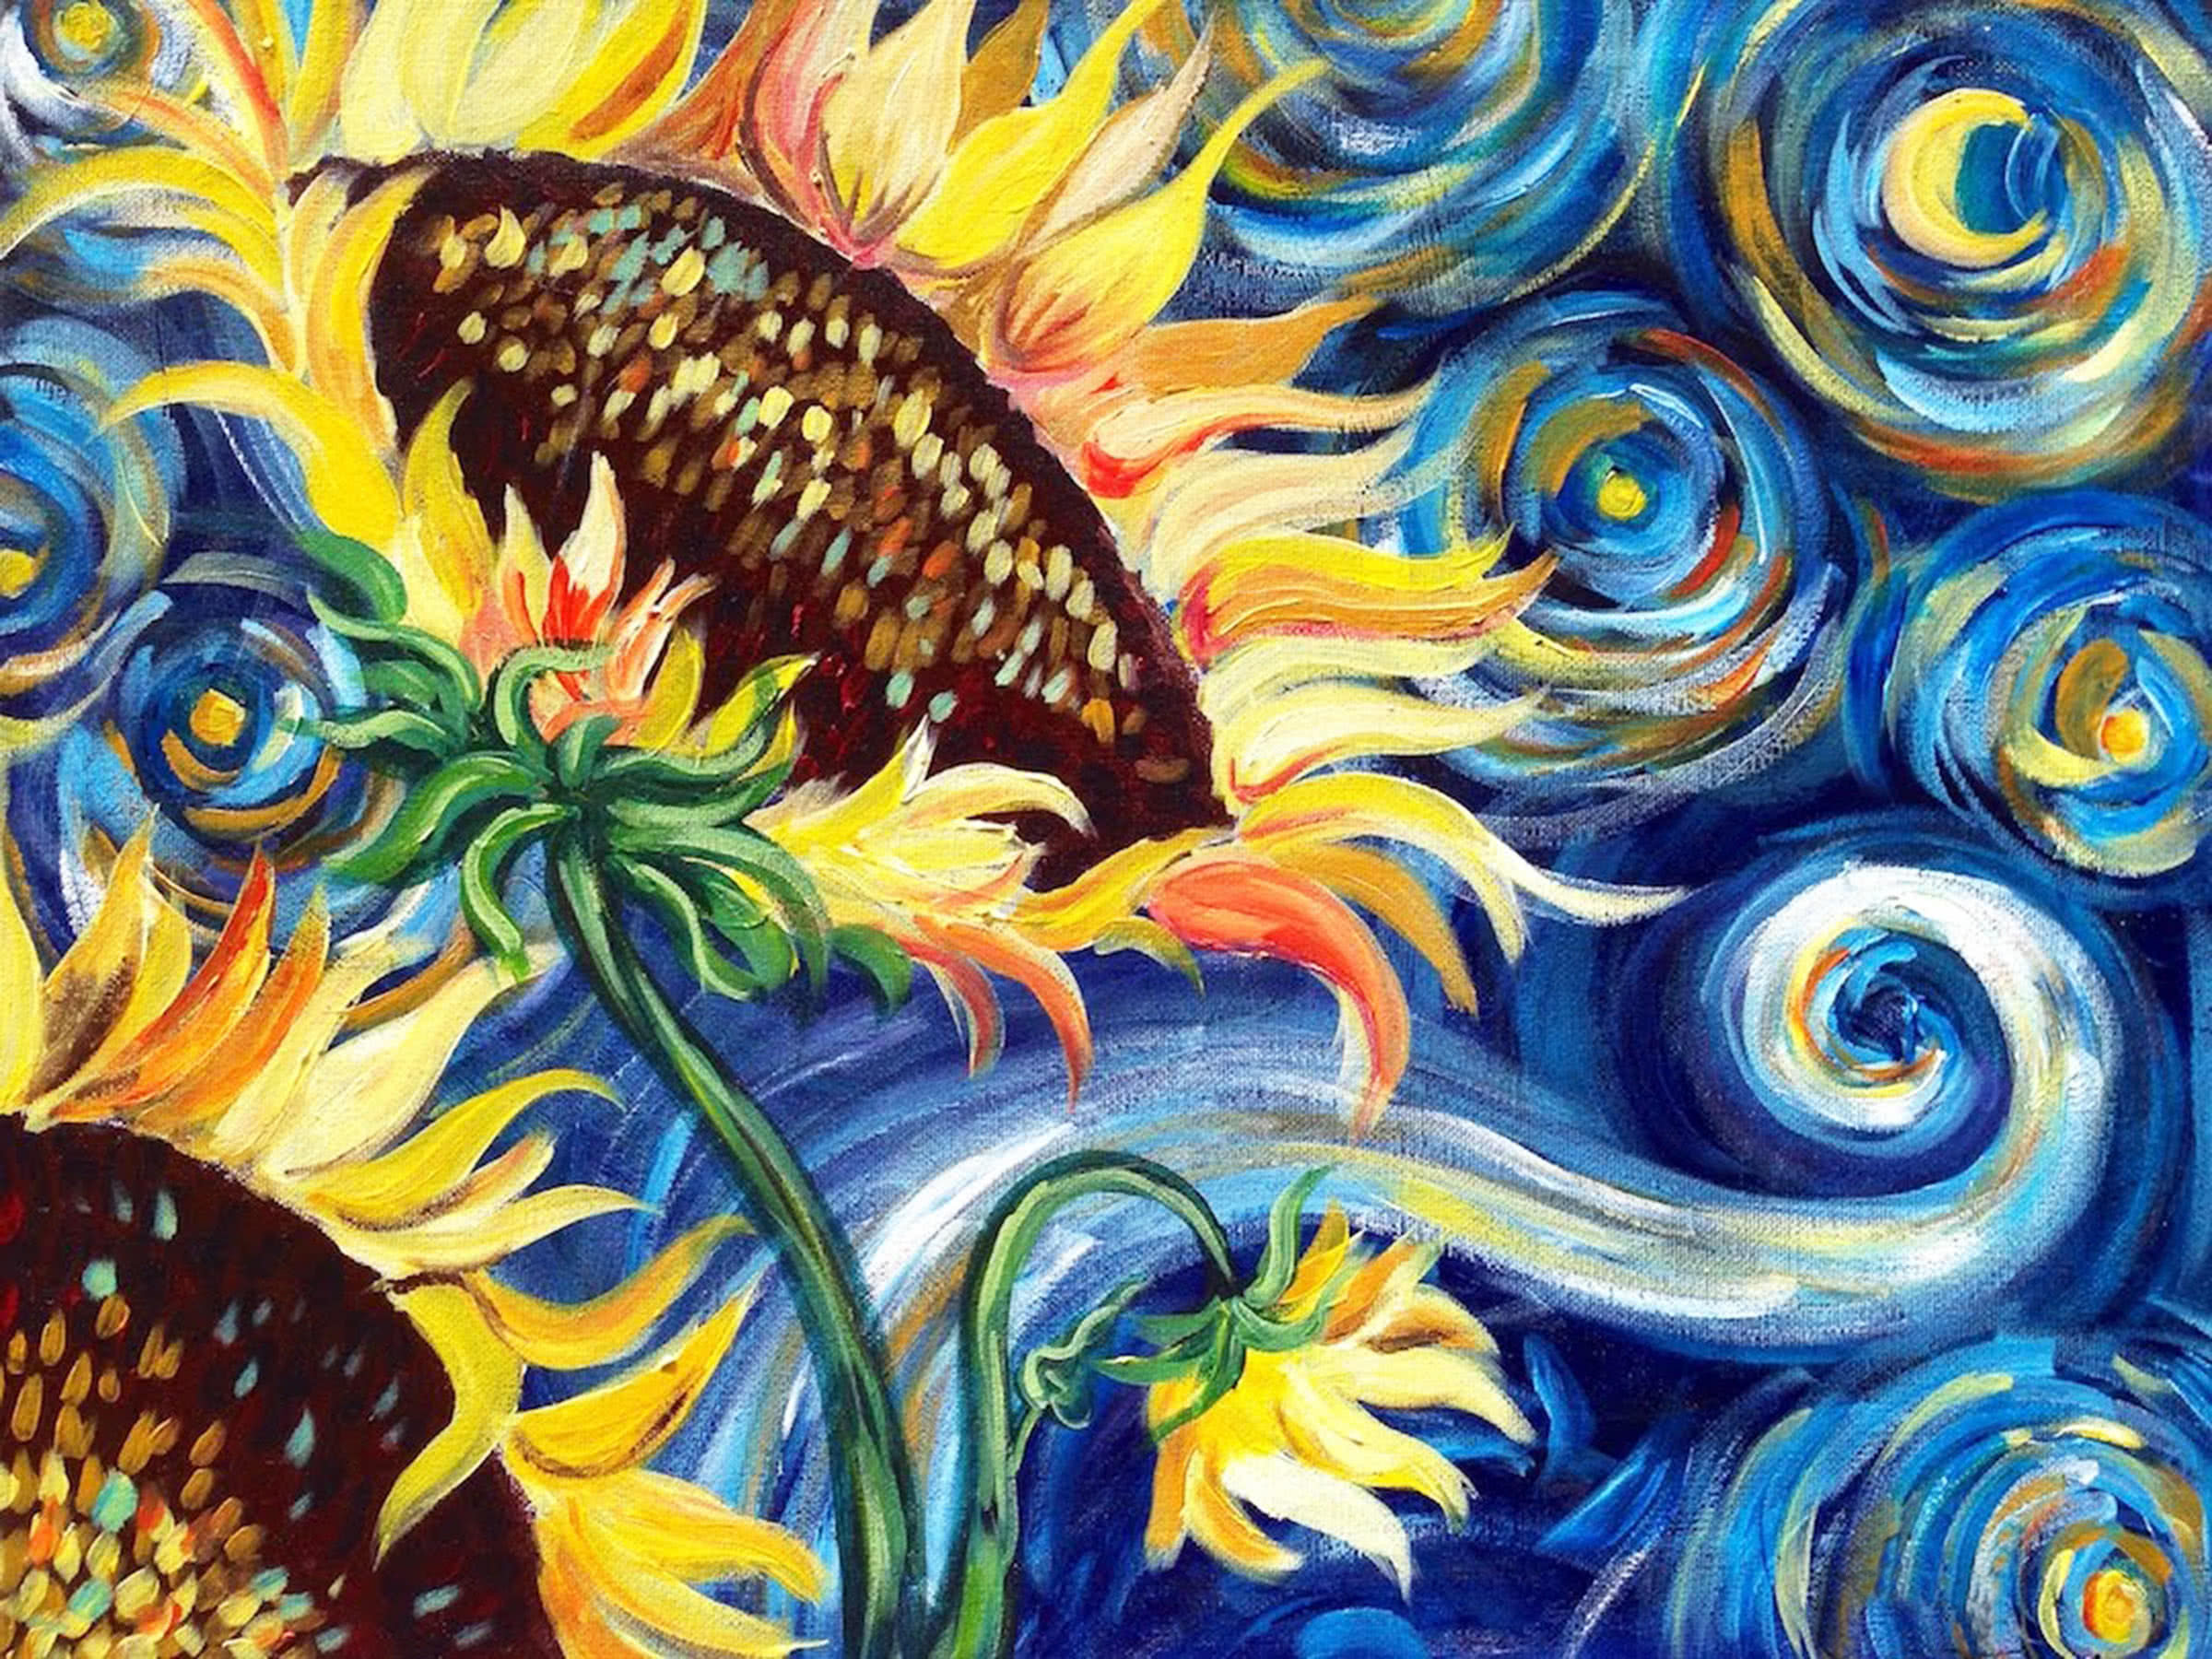 Vincent Starry Night - ArtMasters